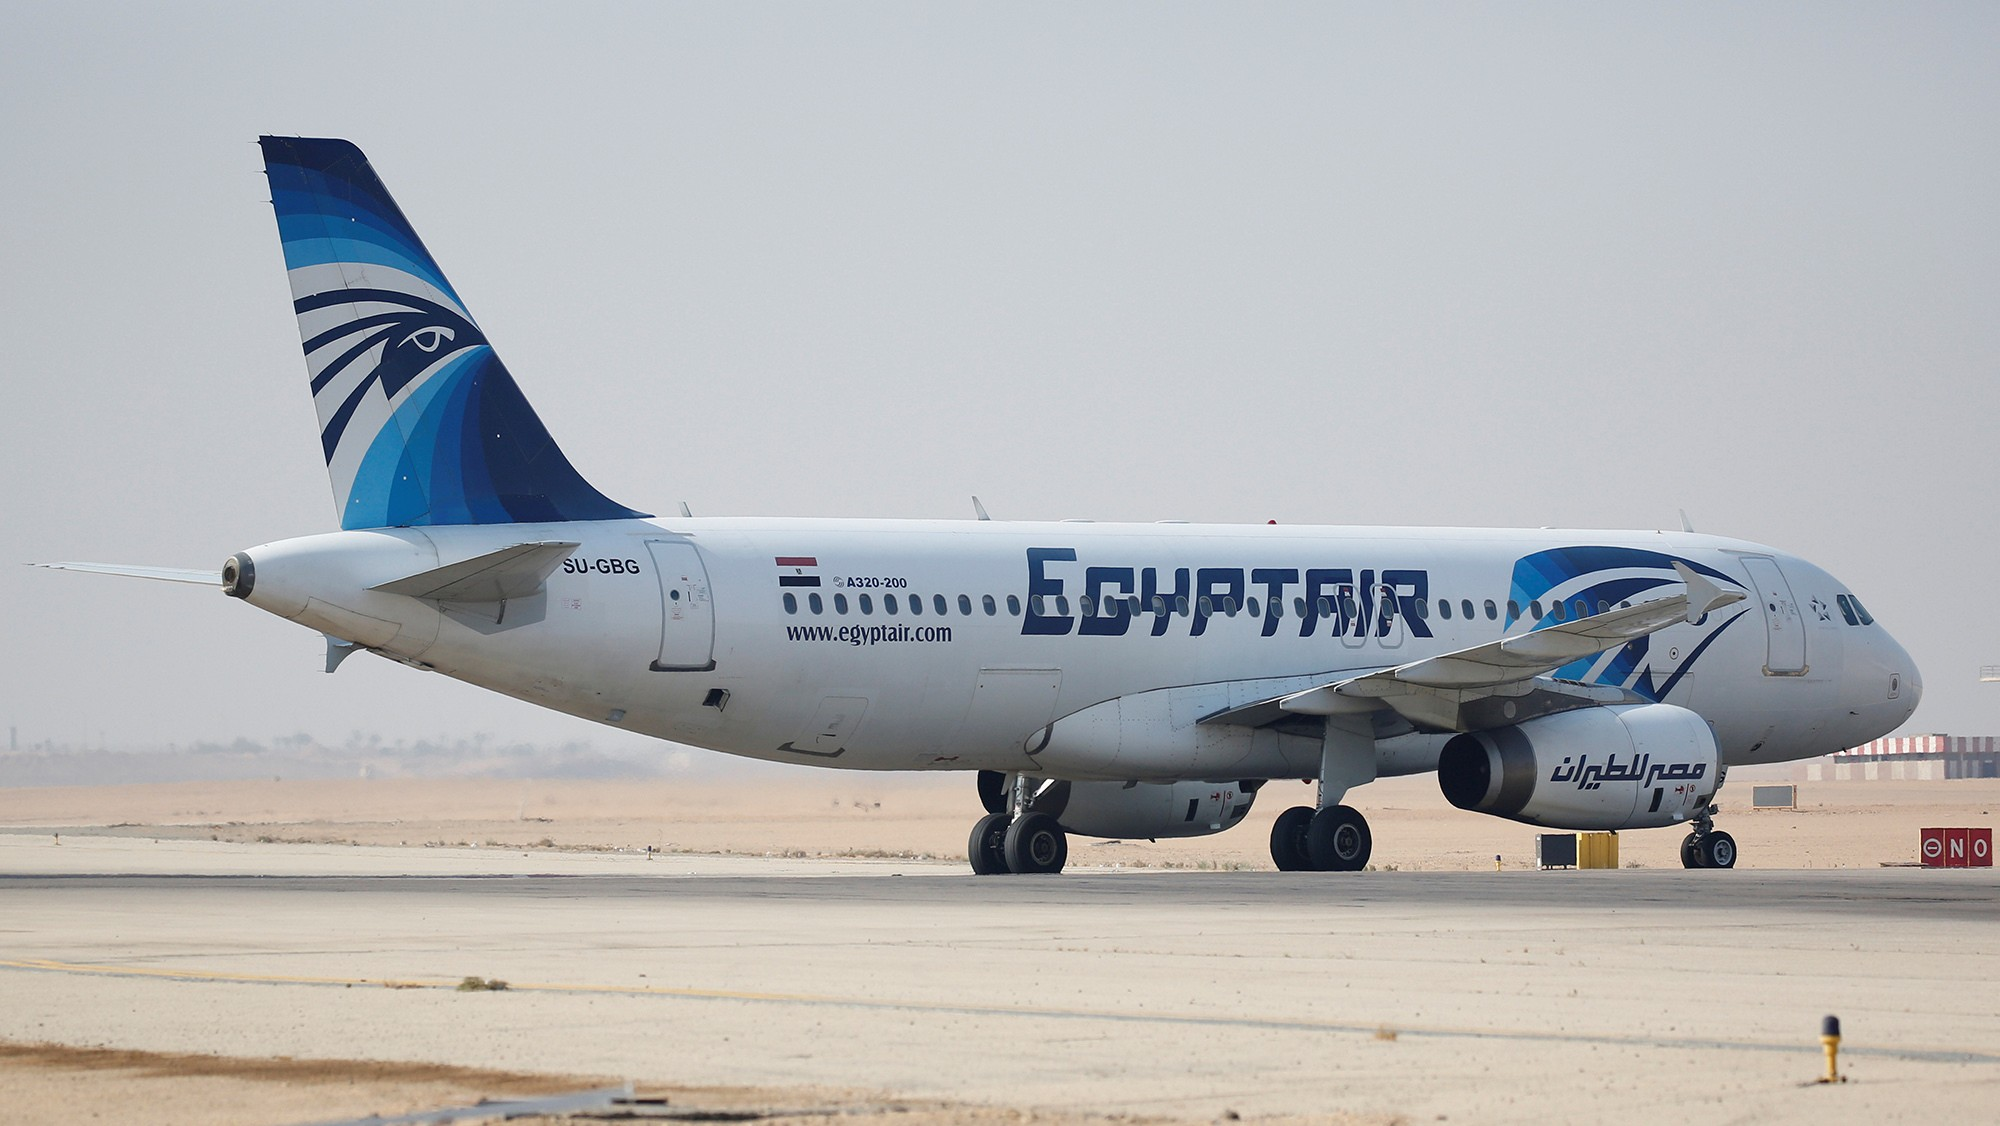 The EgyptAir flight that crashed in the Mediterranean may have been on fire